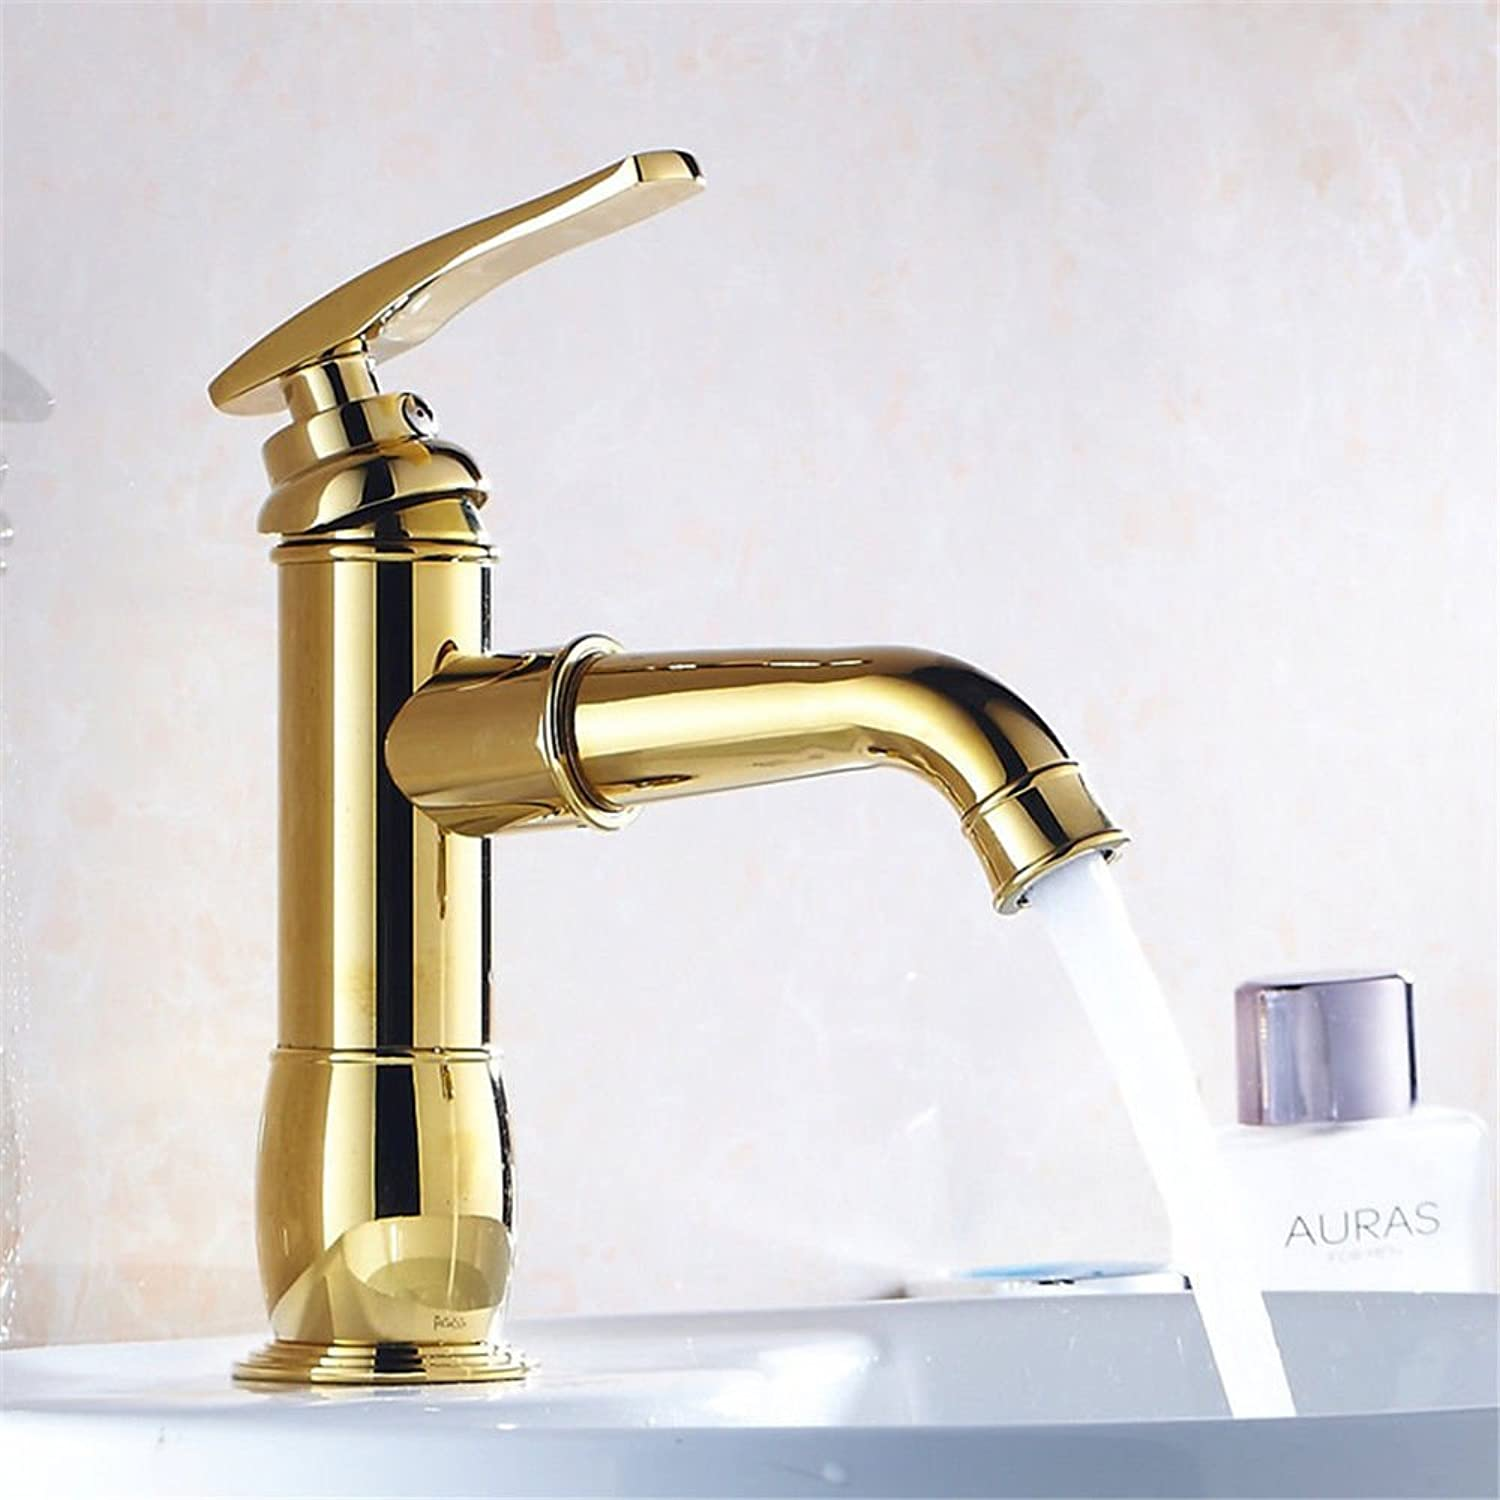 FERZA home Sink Mixer Tap Bathroom Kitchen Basin Tap Leakproof Save Water Copper Antique gold color Mixing Hot And Cold Water Bathroom